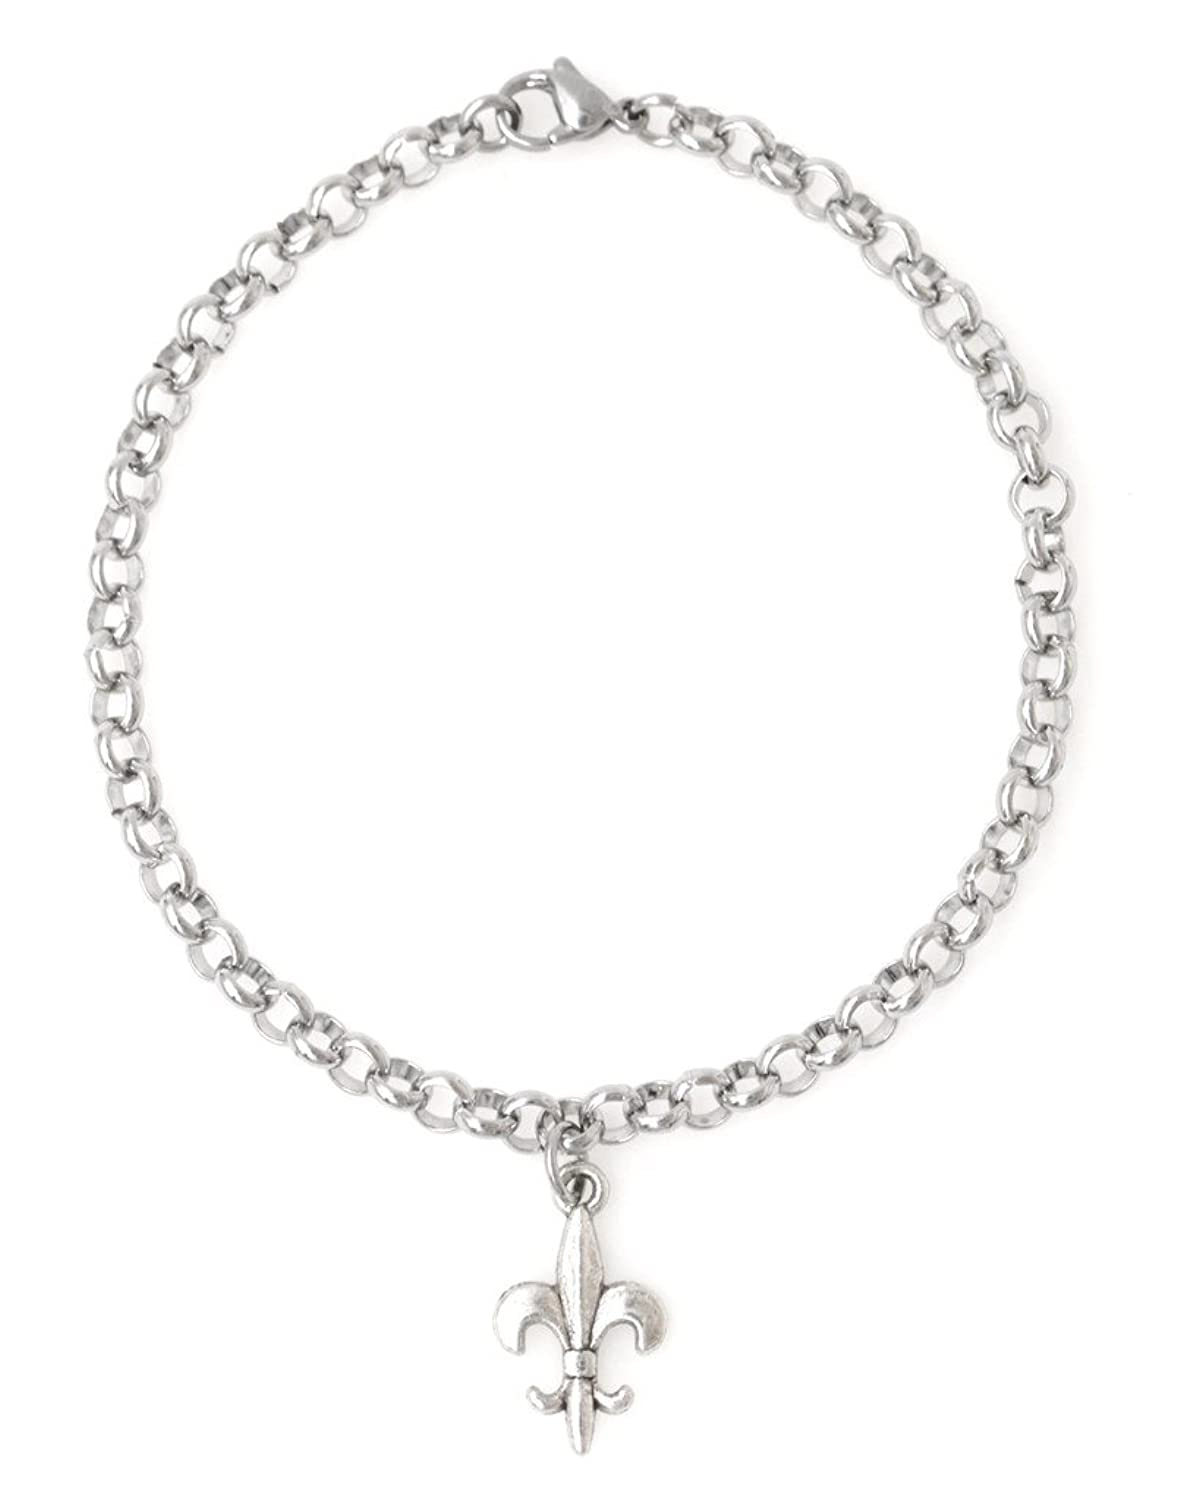 "It's All About...You! Adjustable 8.5"" Stainless Steel Bracelet with Alloy Fleur De Lis. Personalize with Clip on Charms (De Lis) 66O"